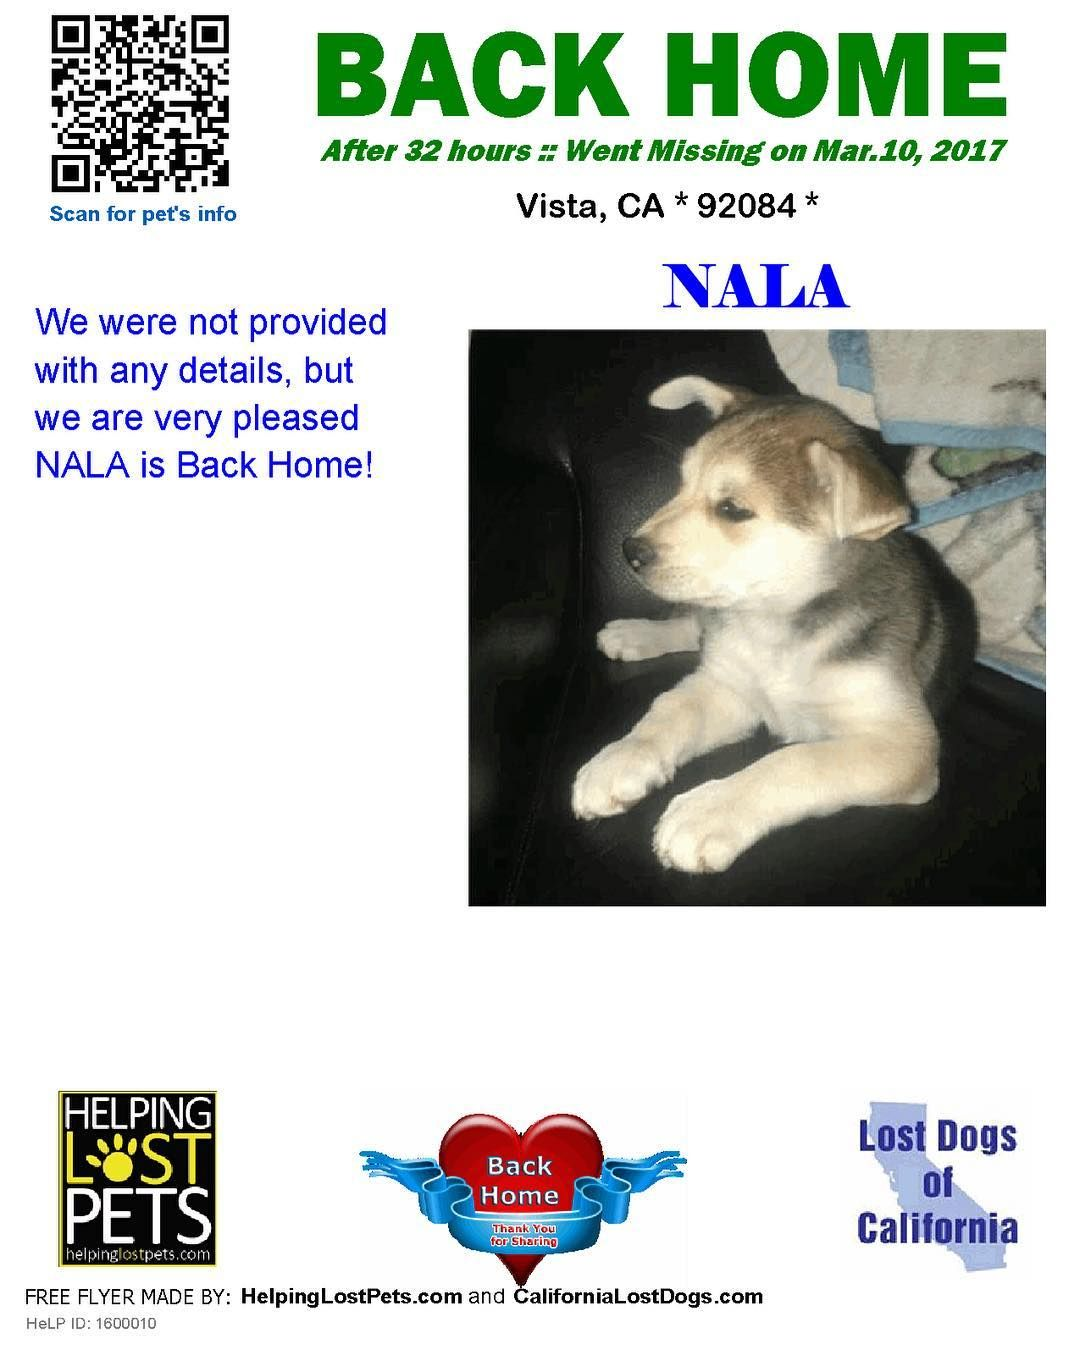 We Are Very Happy To Report Nala Is Back Home After 1 Day Welcome Home Nala Reunited Lostdogsca Helpinglostpets Help Id 1 Losing A Dog Losing A Pet Dogs